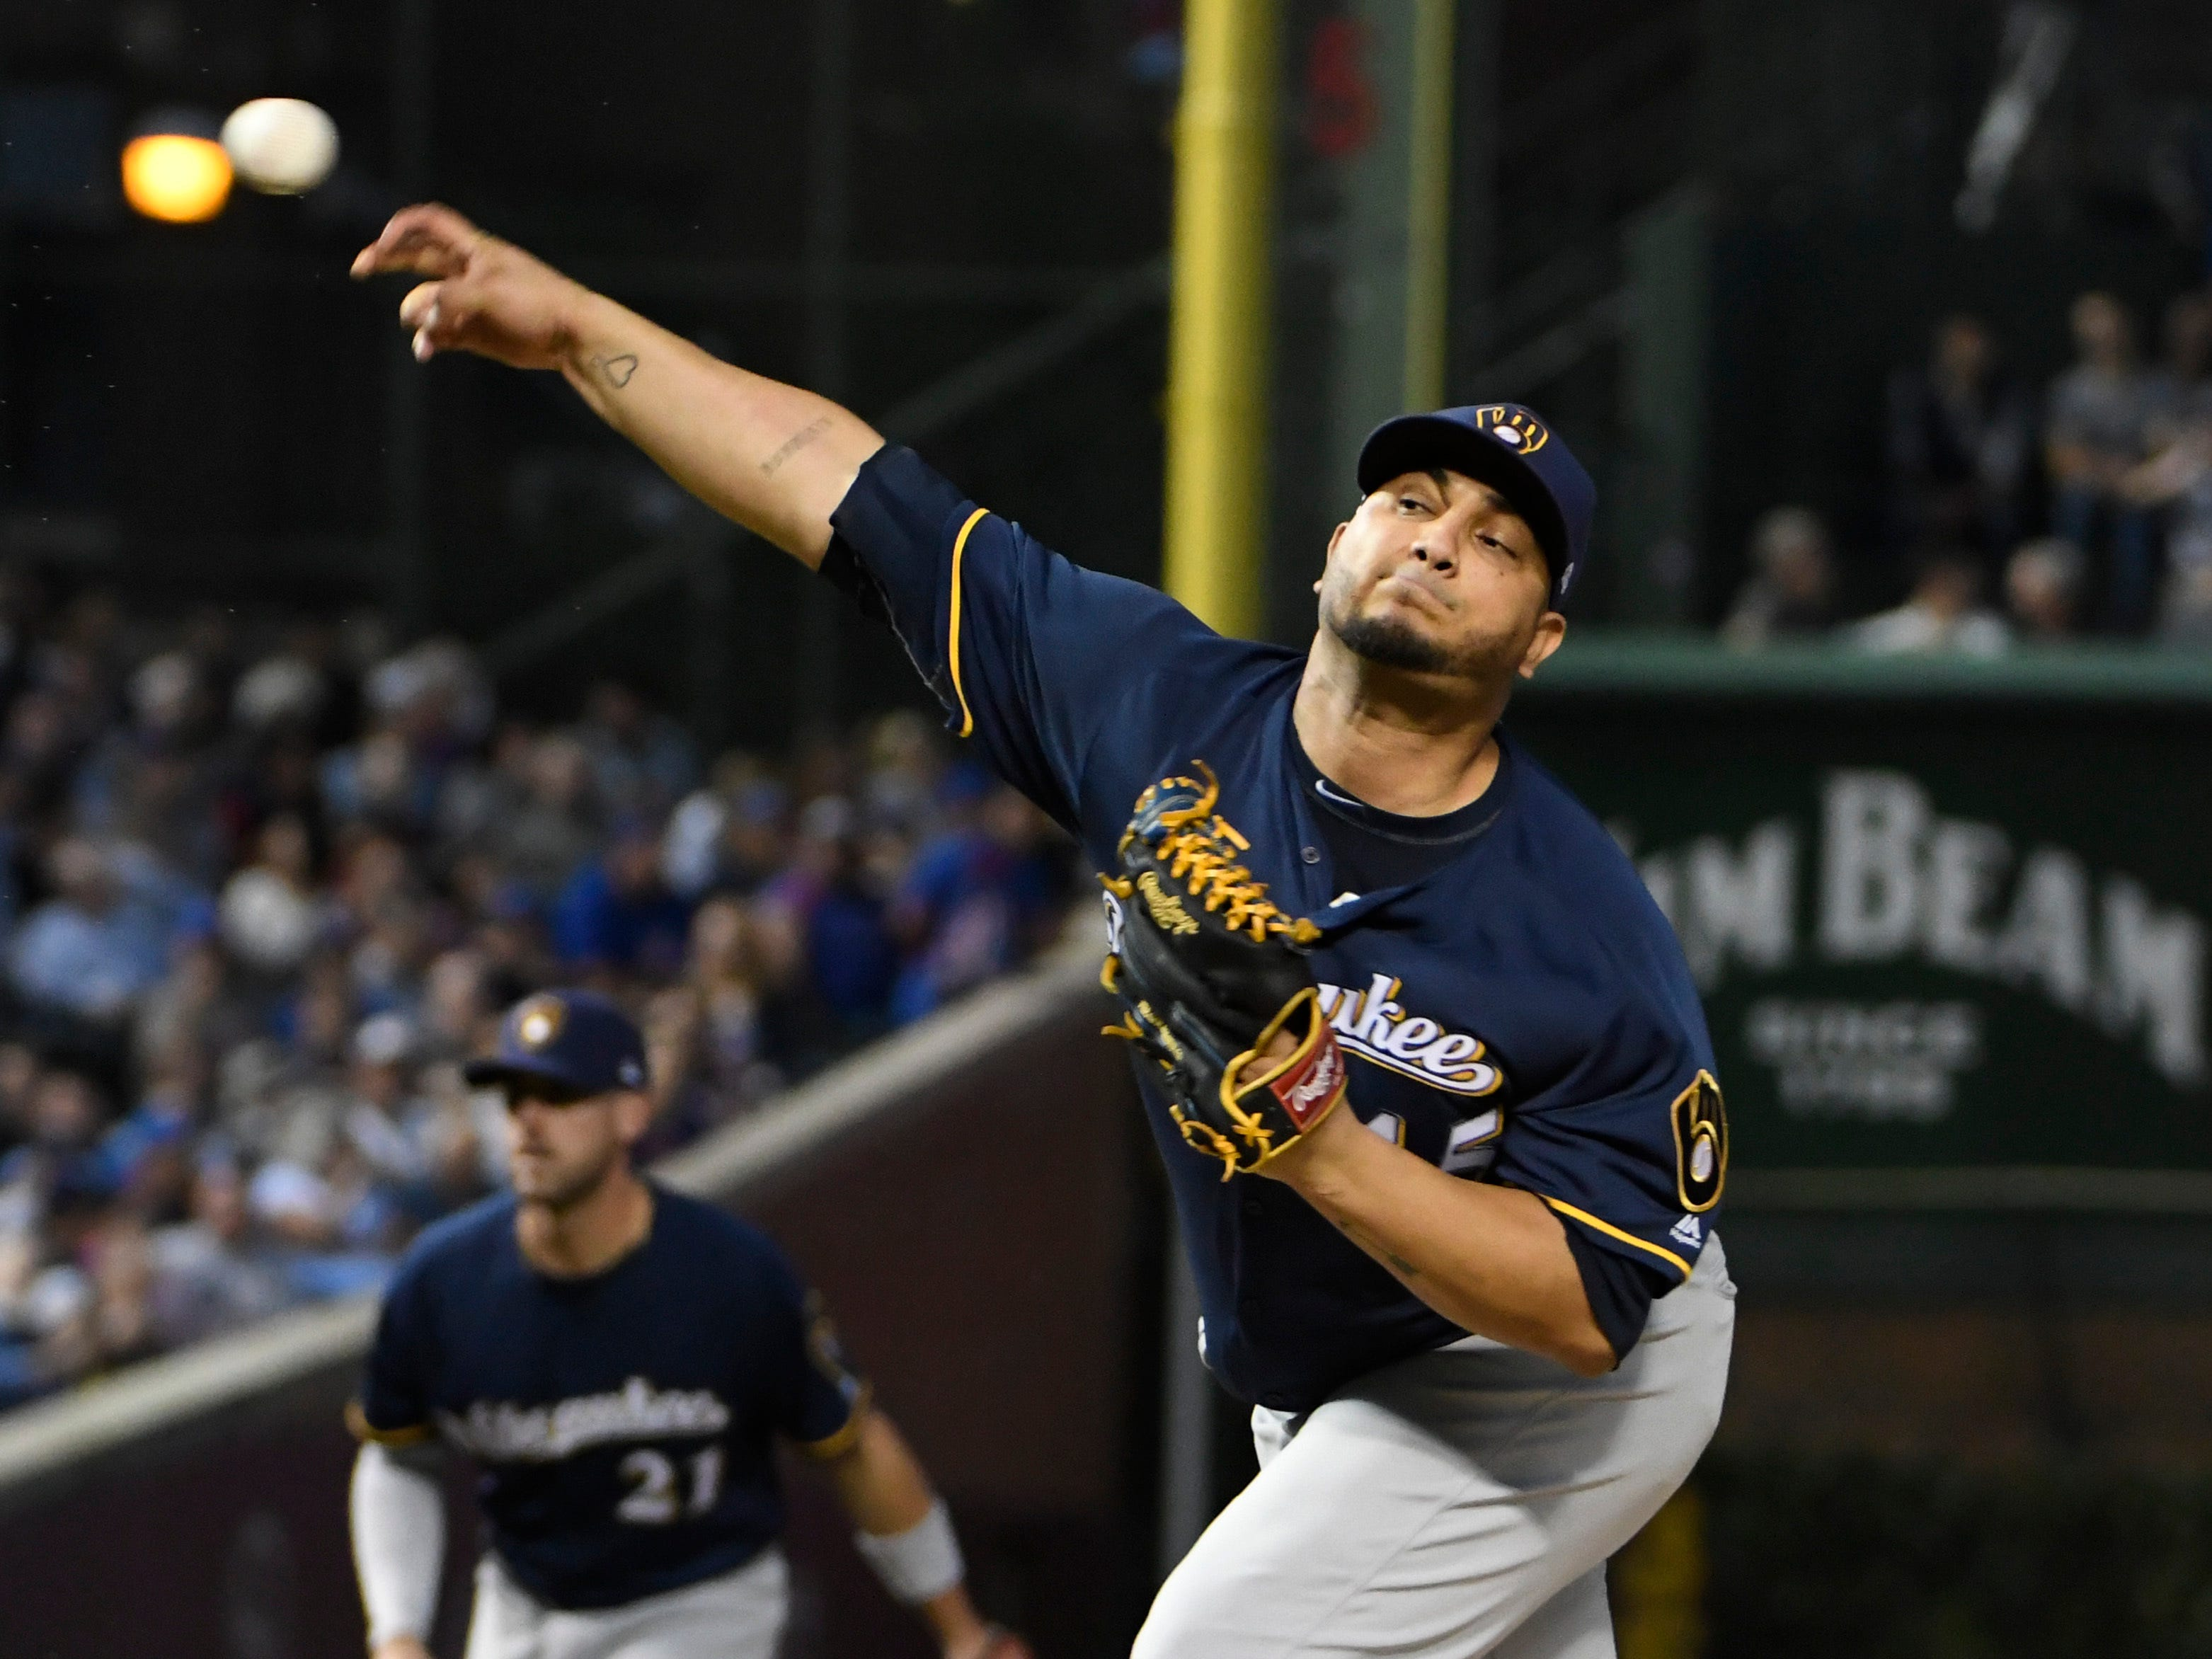 Brewers starting pitcher Jhoulys Chacin deserved a better fate on Tuesday night.